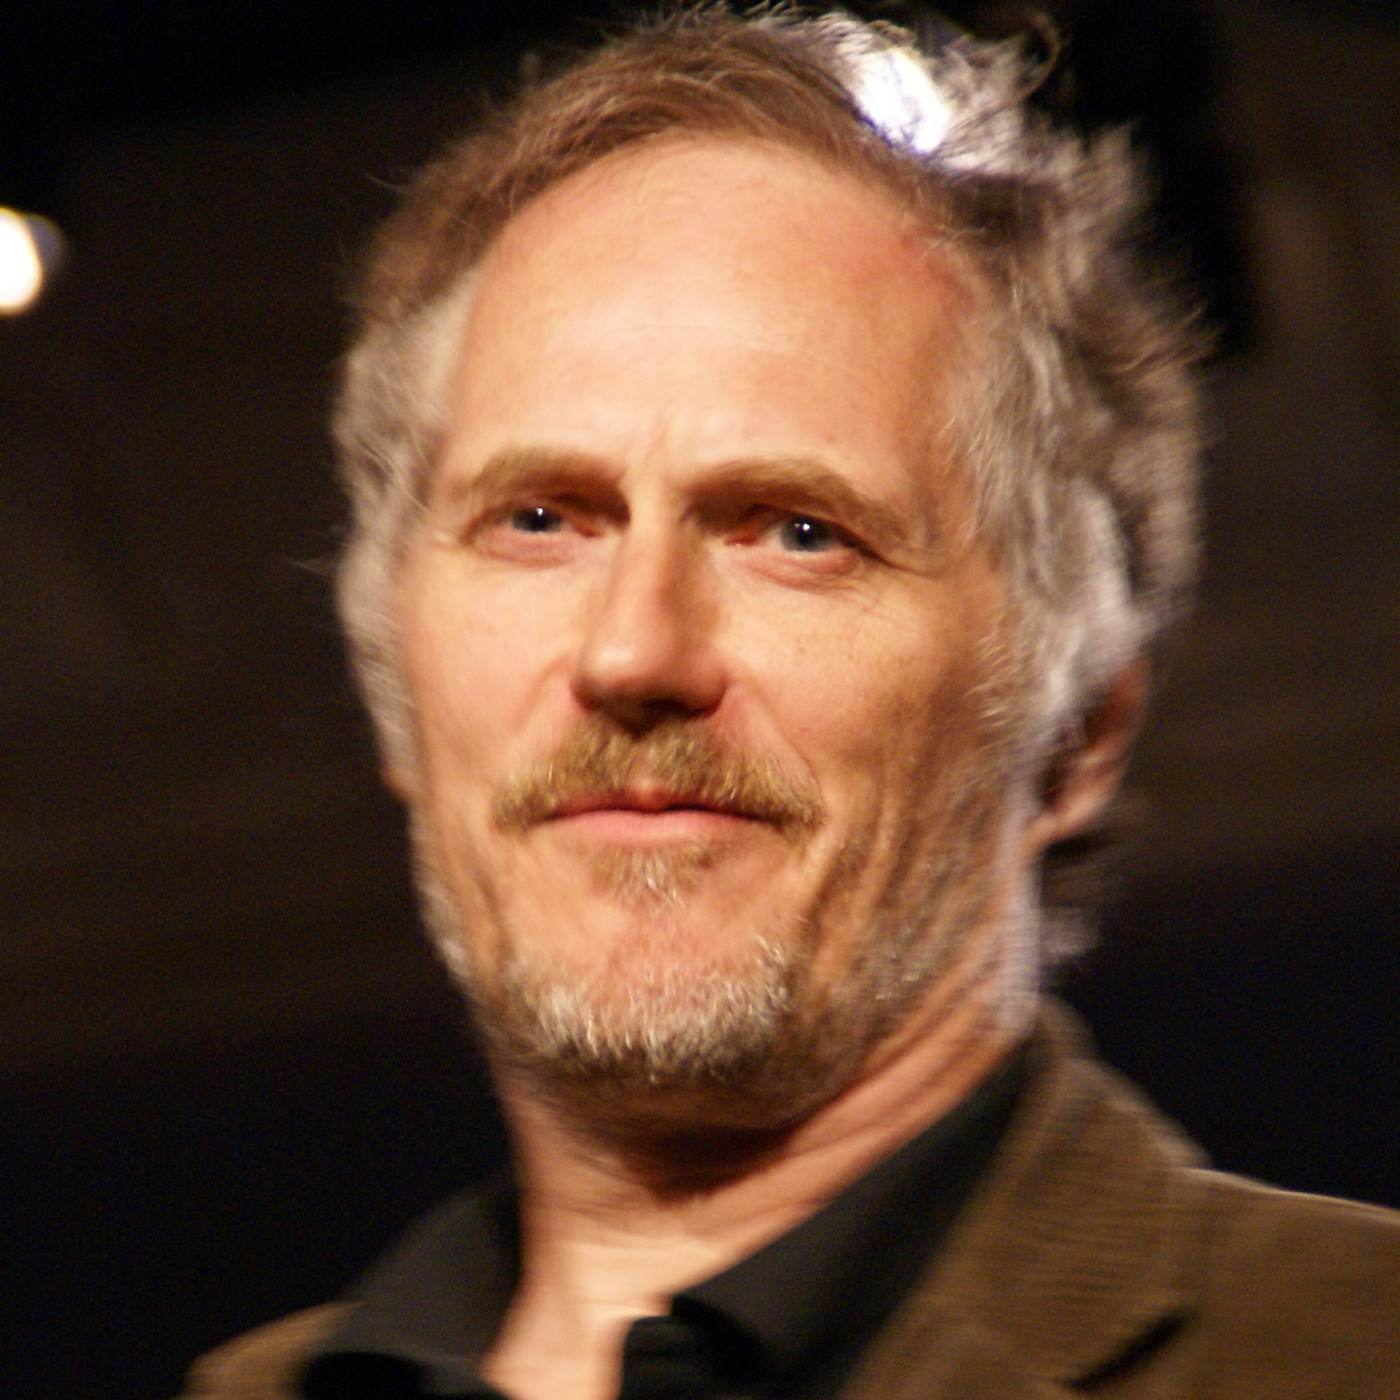 Image of Tim O'Reilly by takeshi honma